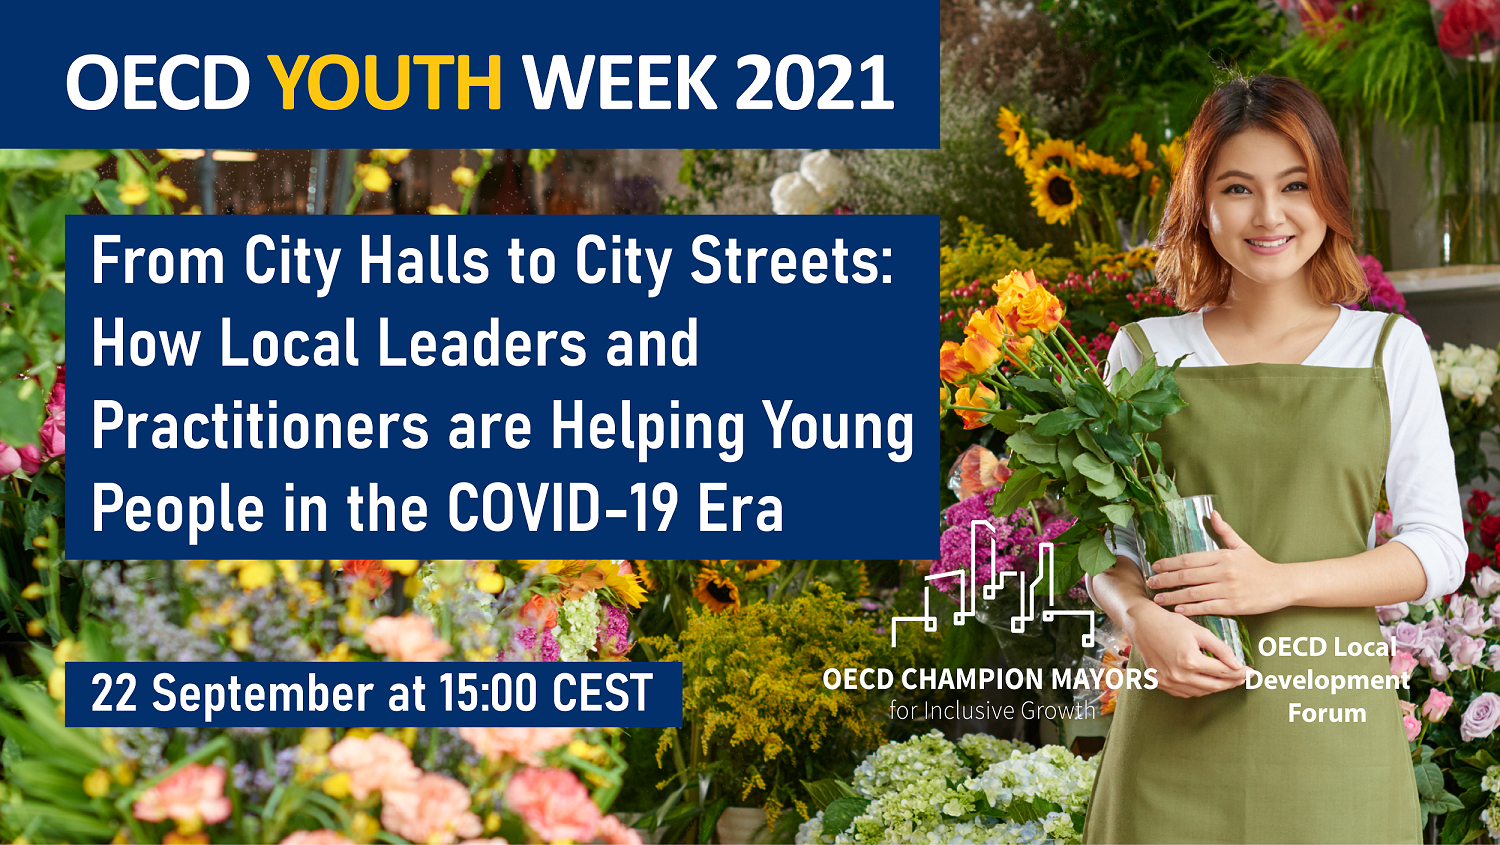 Webinar - From City Halls to City Streets: How Are Local Leaders and Practitioners Helping Young People in the COVID-19 Era?